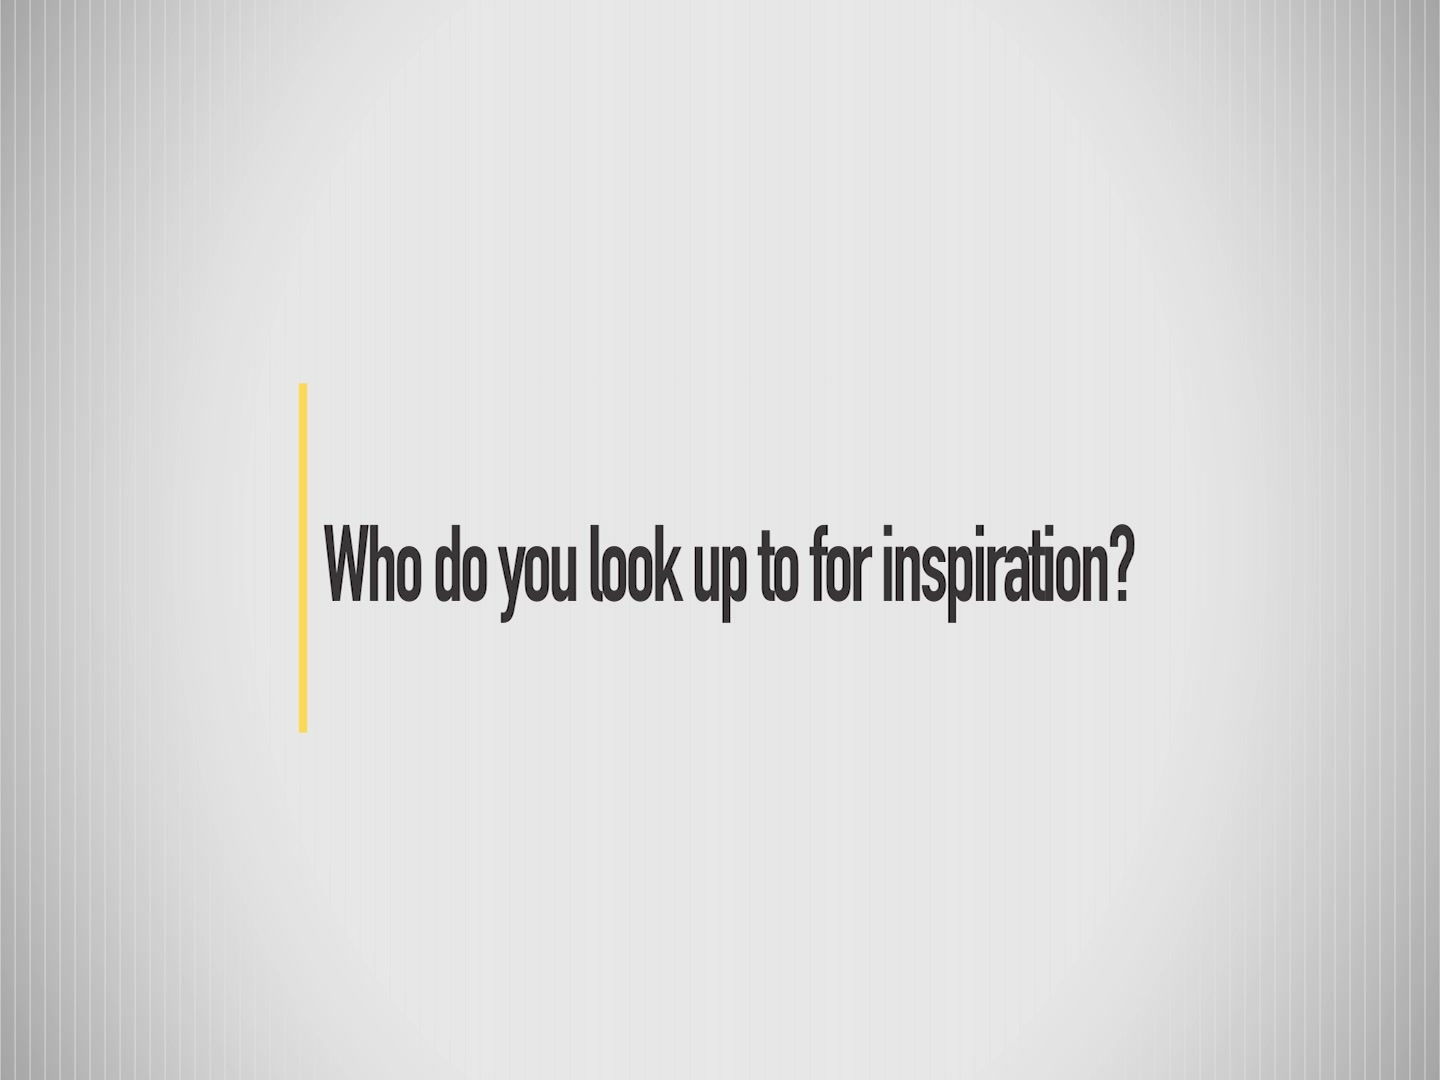 Who do you look up to for inspiration?